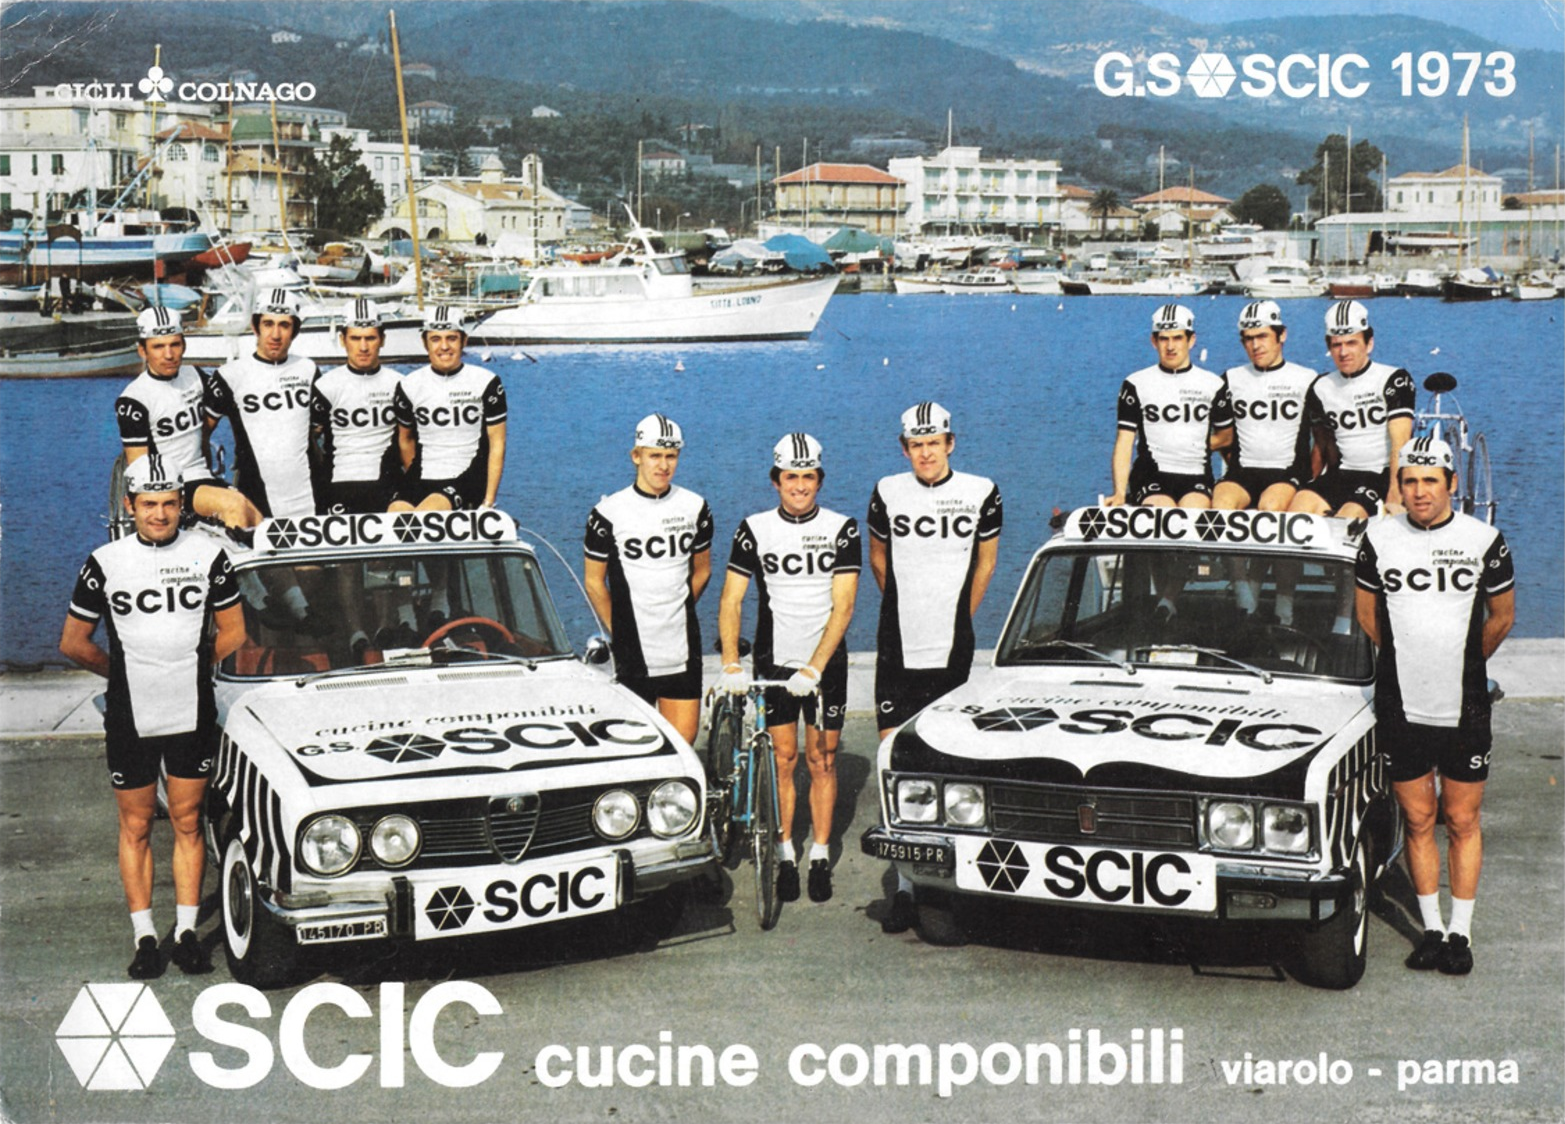 File:Scic cycling team 1973.jpg - Wikimedia Commons